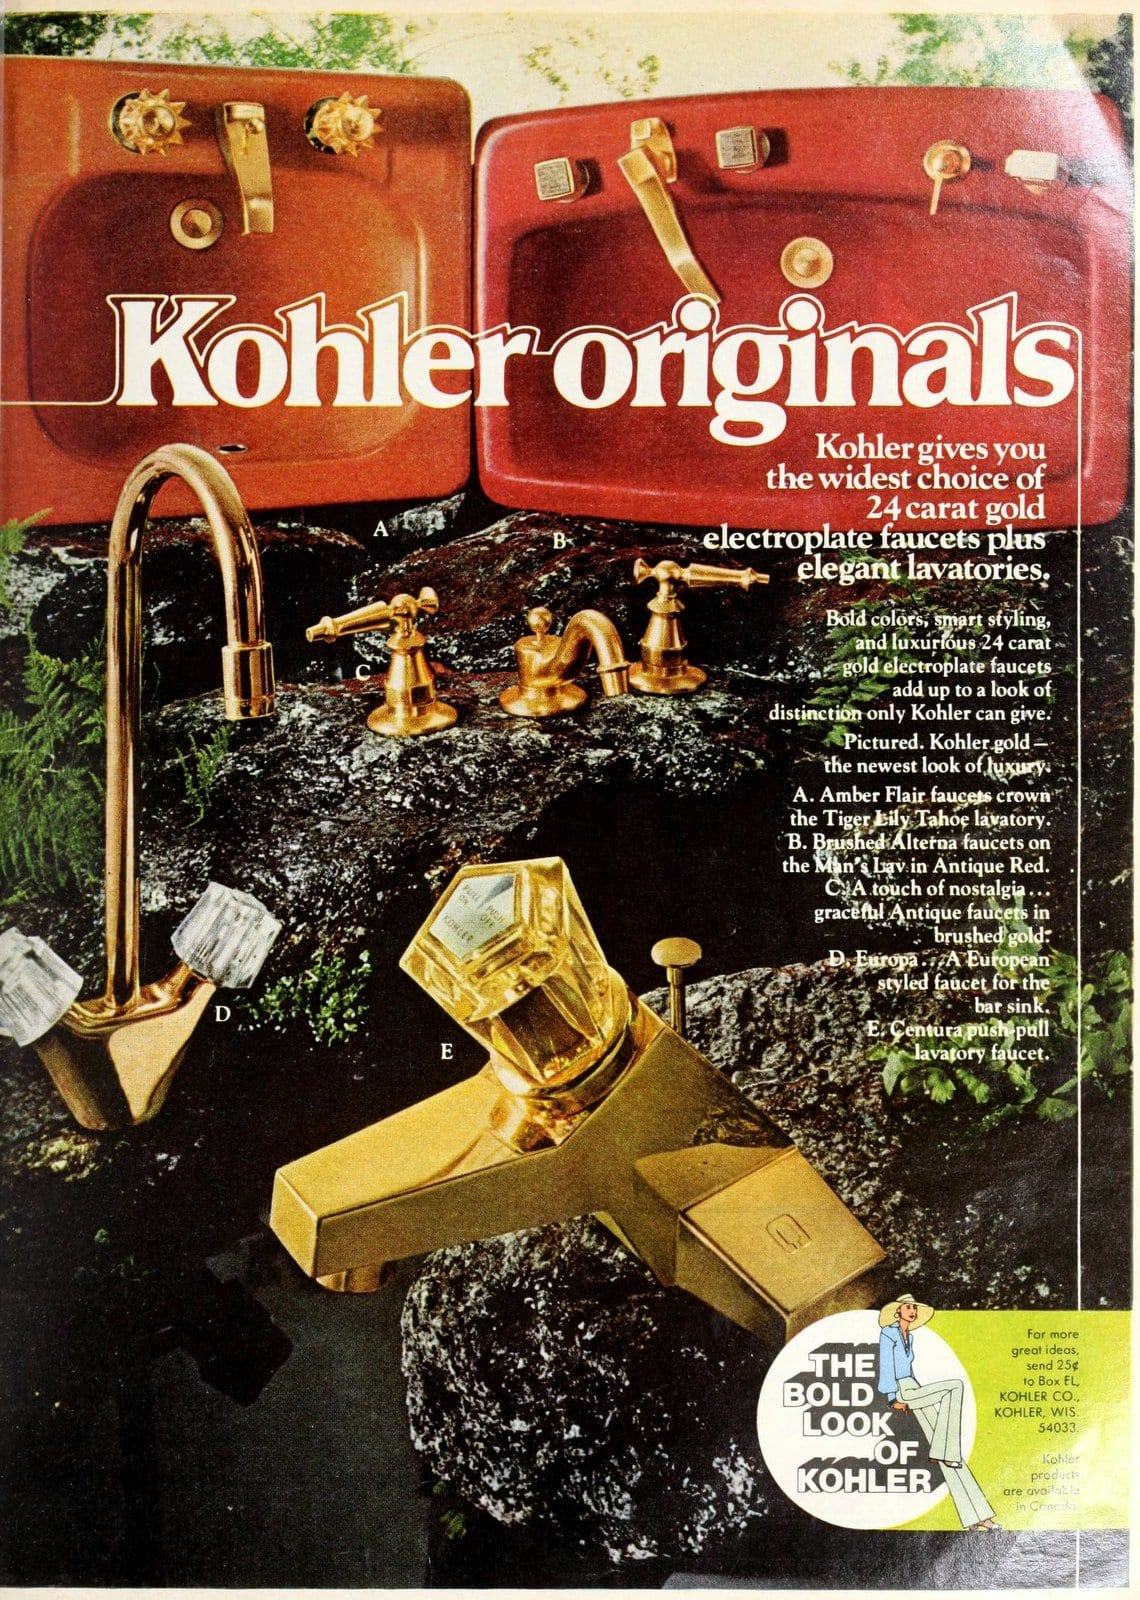 Red and orange bathroom sinks and gold faucets (1975)